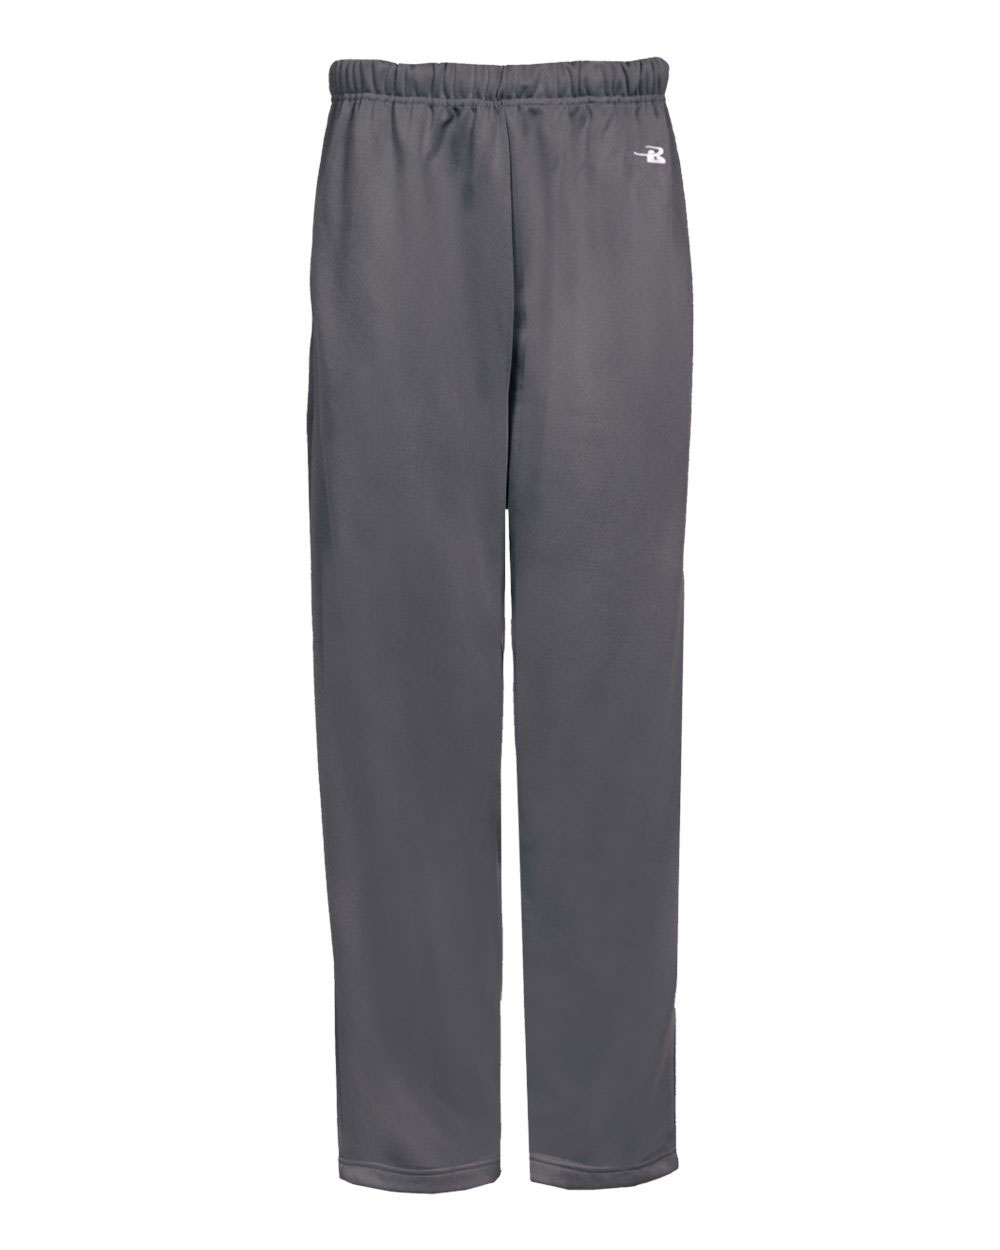 Badger Mens Performance Open Bottom Pant